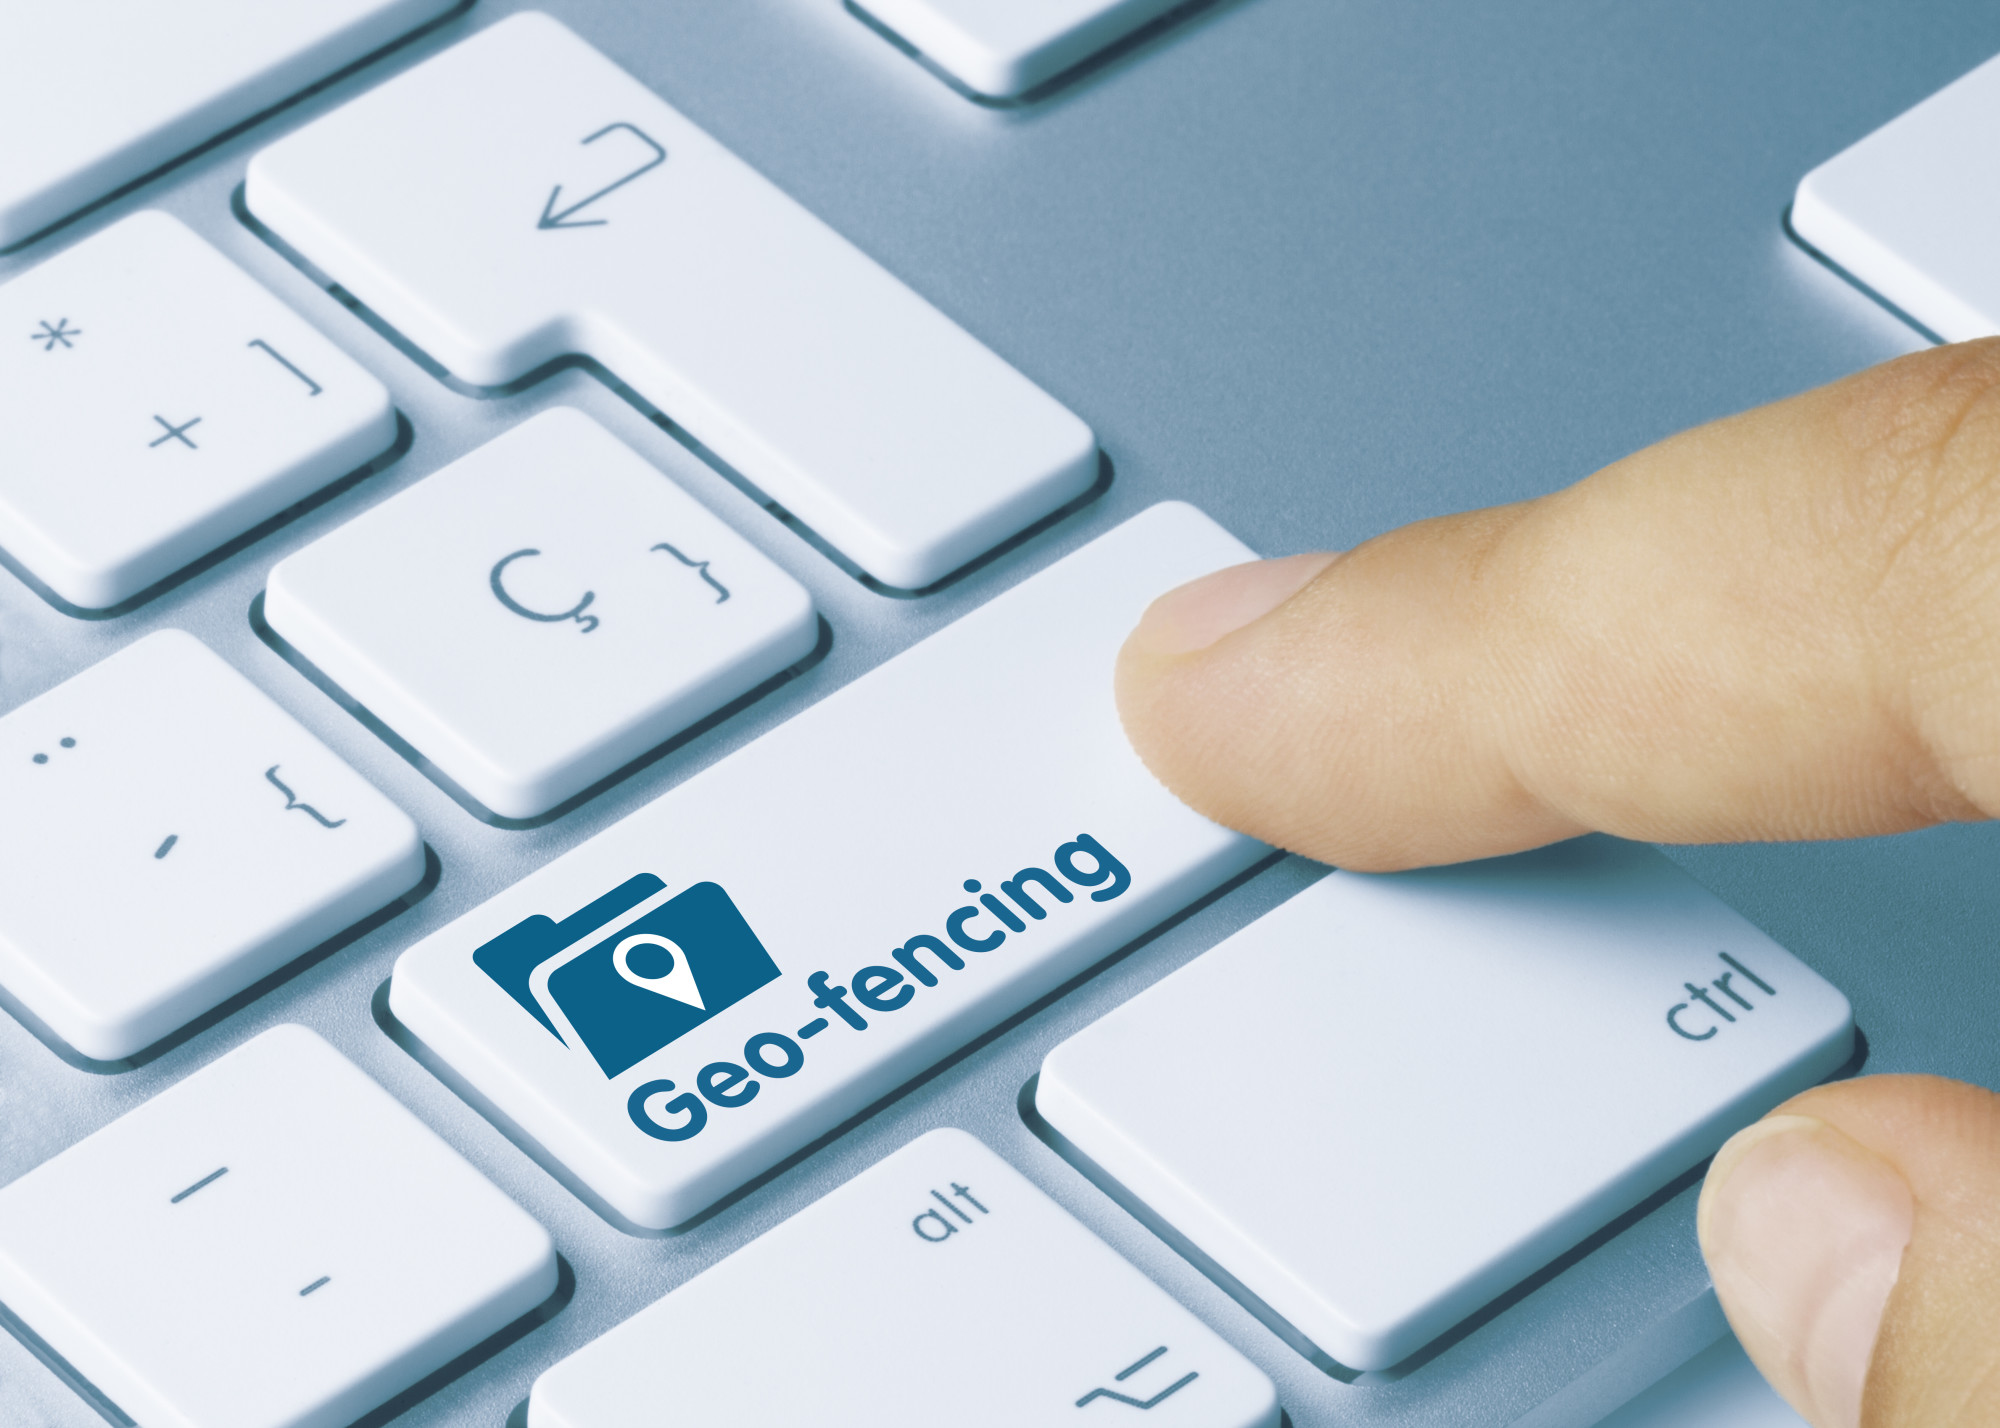 geofencing button on keyboard